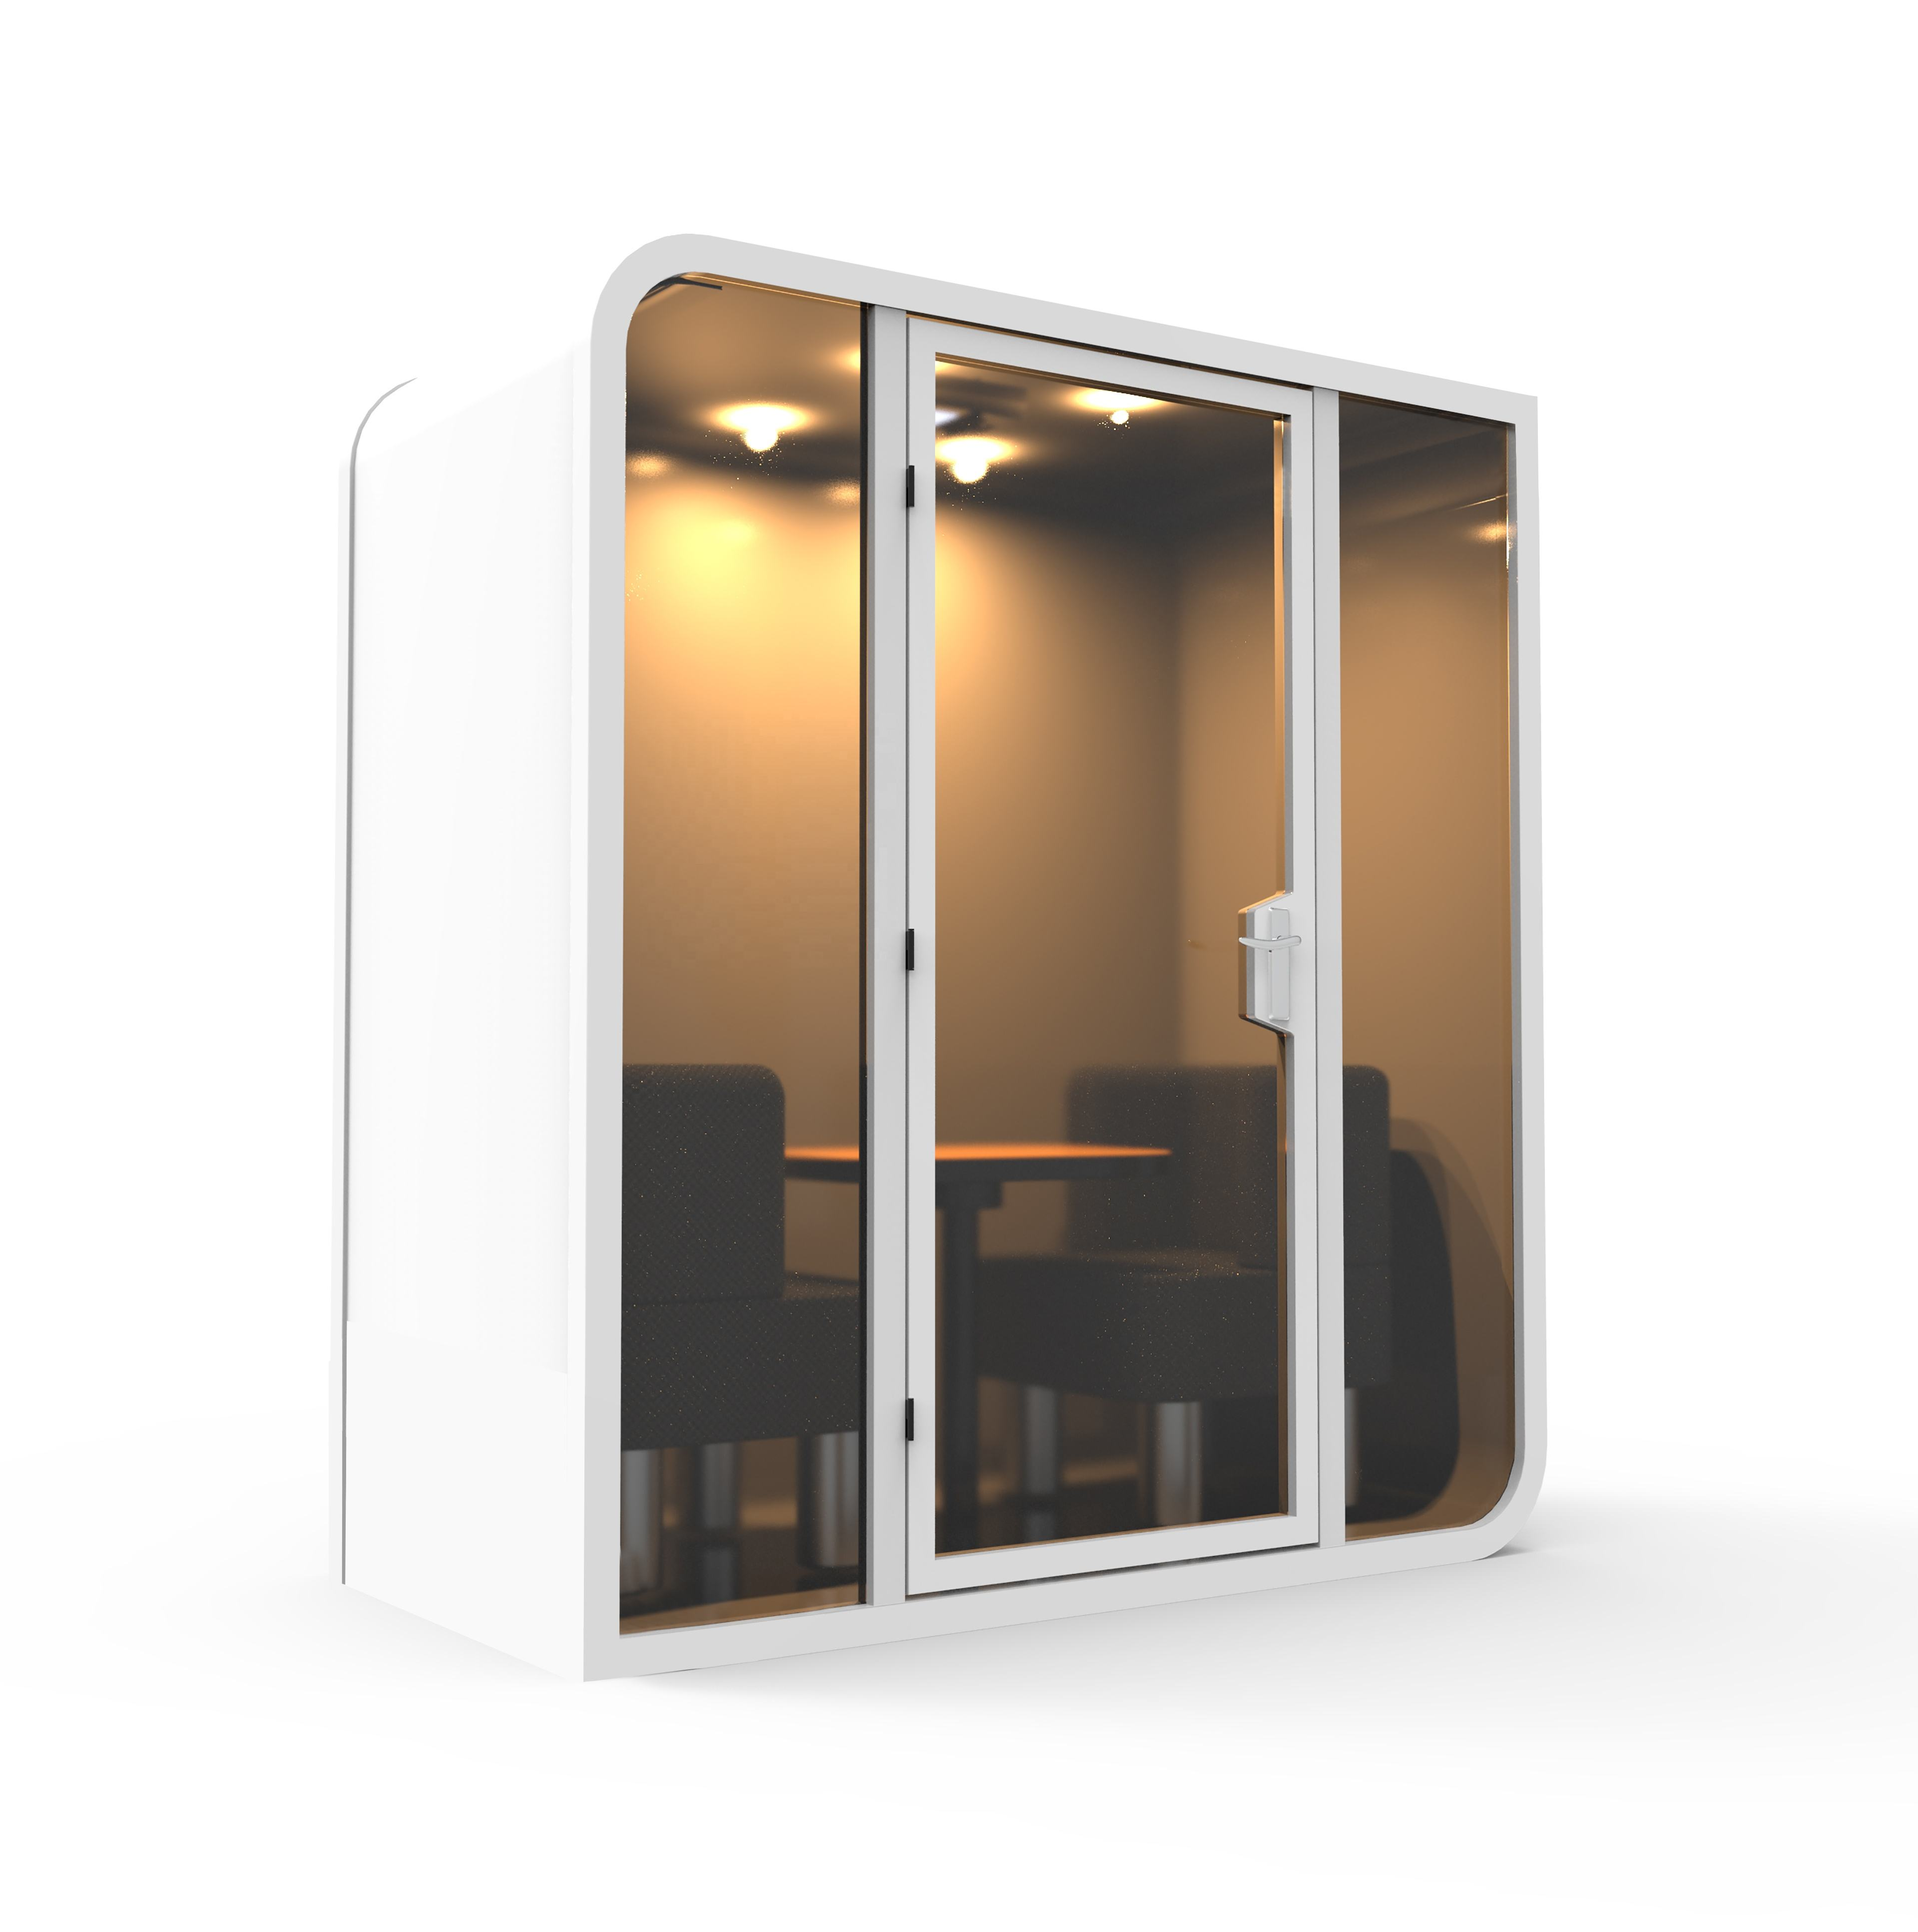 Office meeting pod for 4 persons